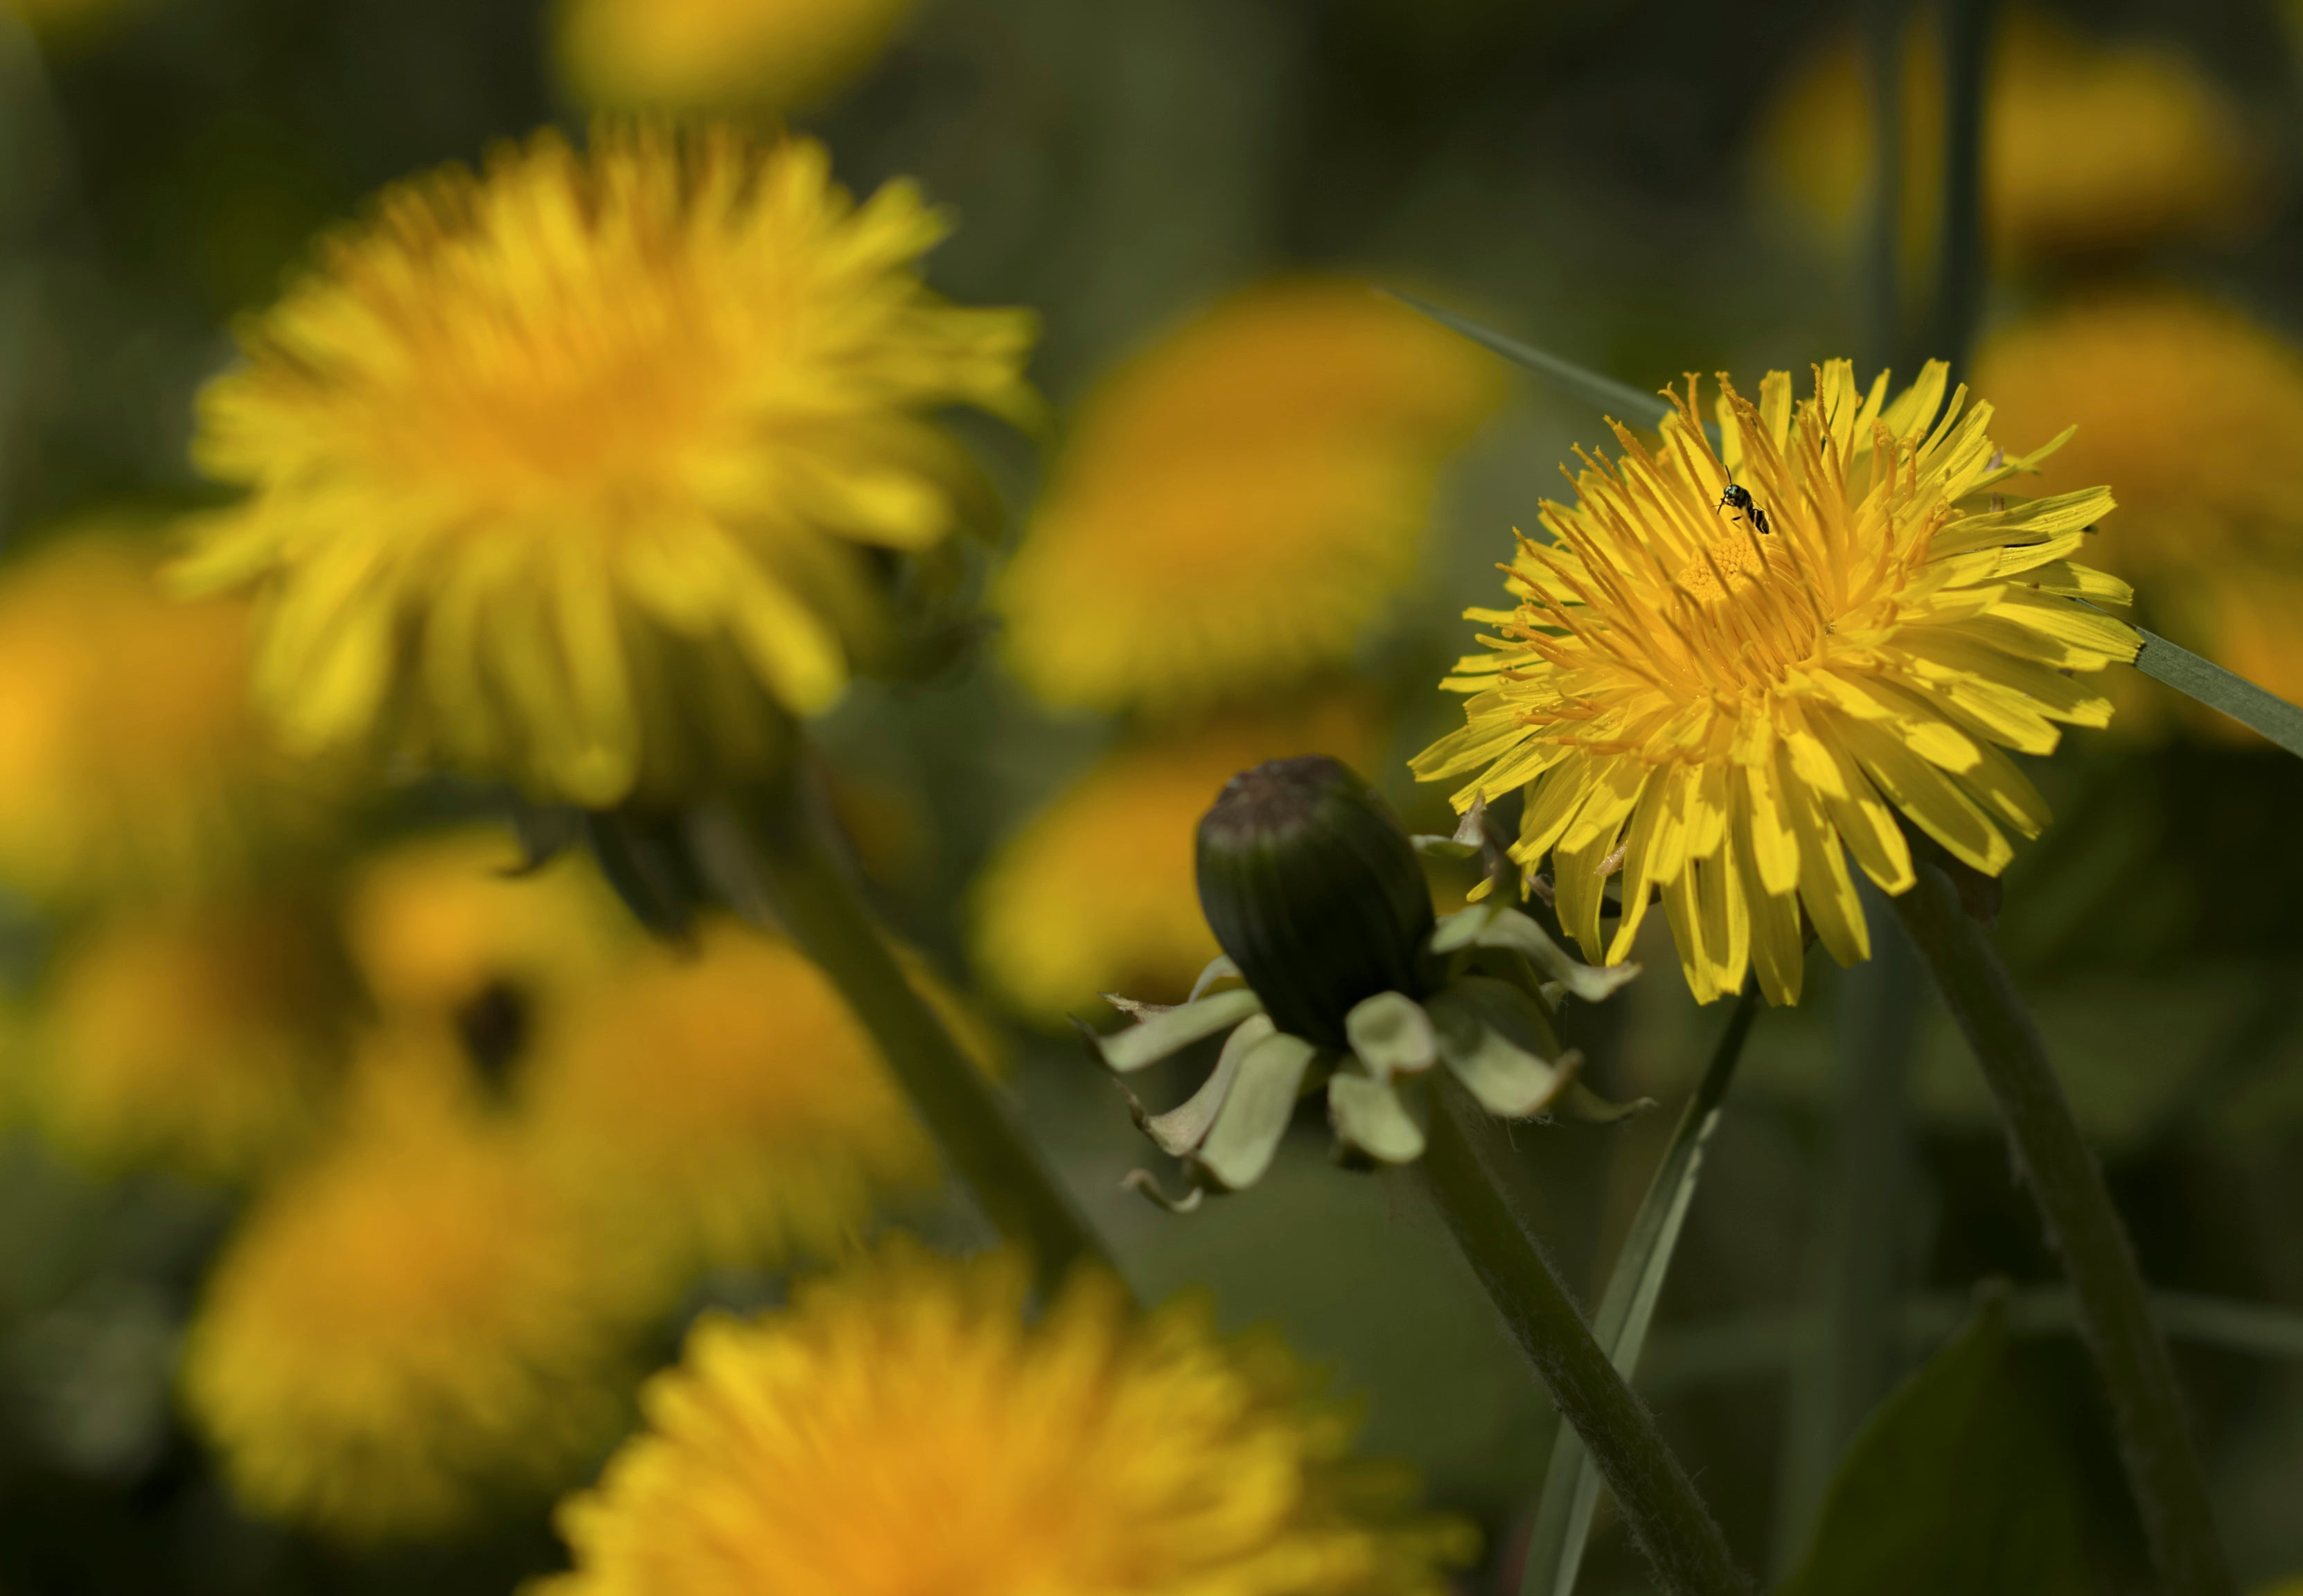 Close up of multiple blooming yellow dandelion heads and one closed dandelion bud